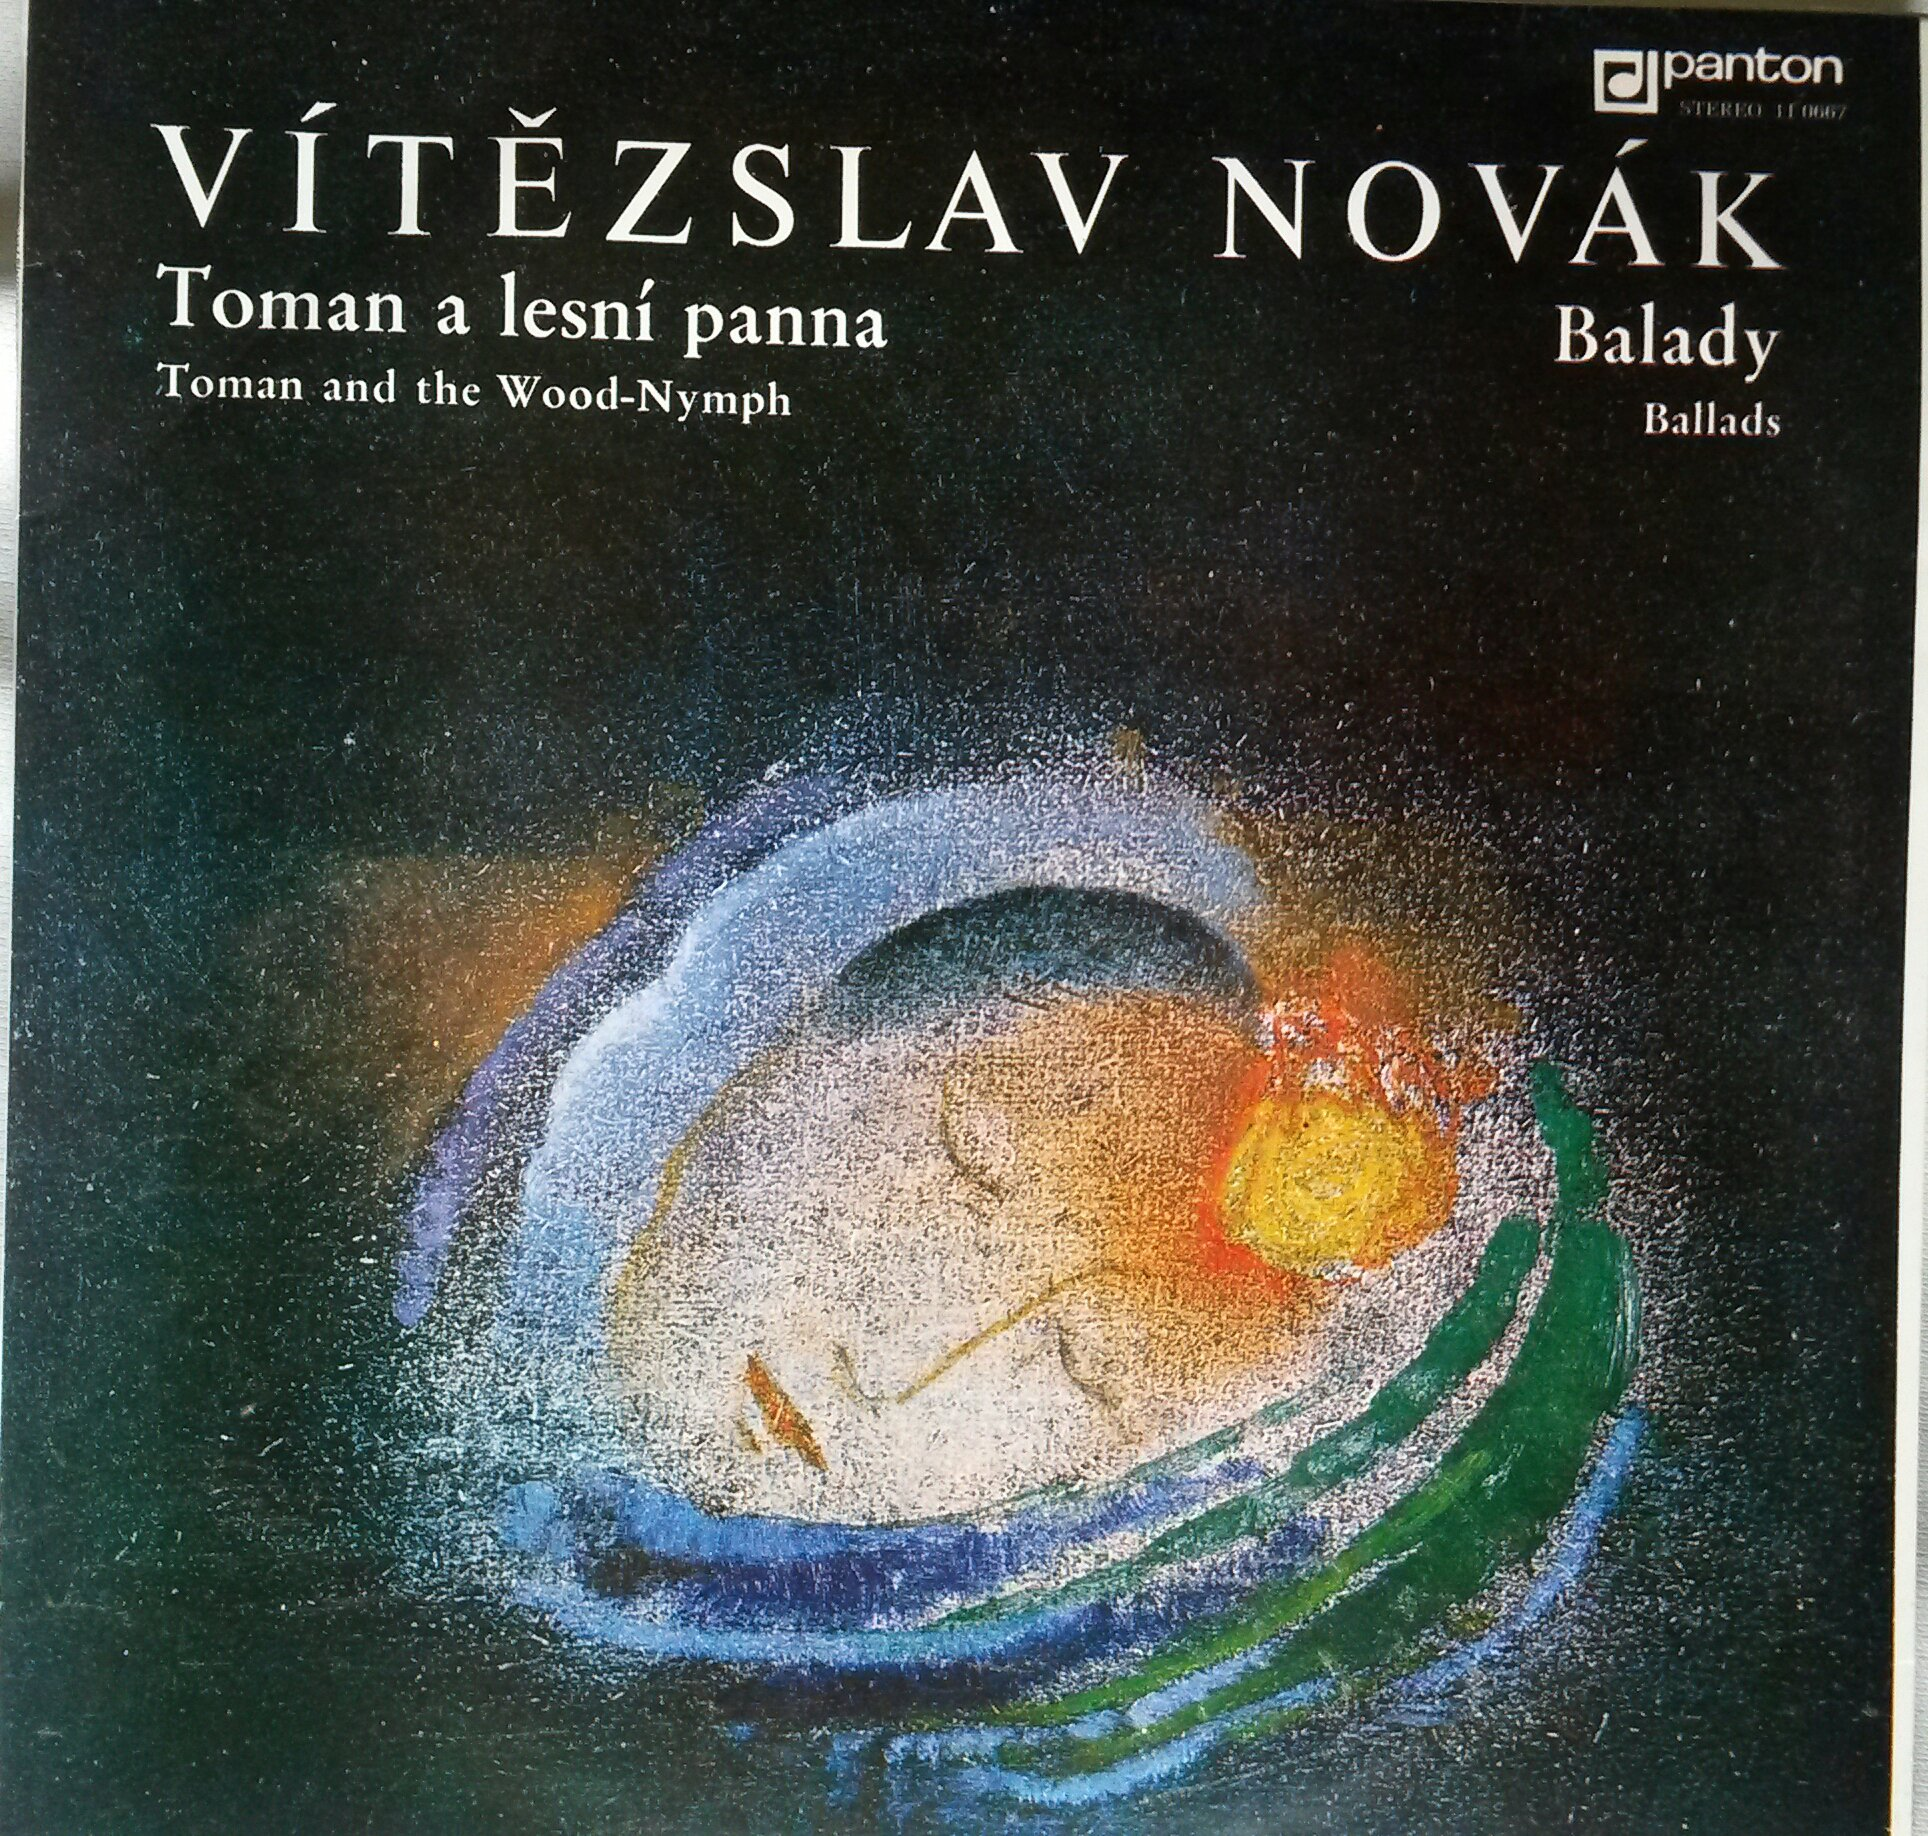 Vitezslav Novak: Toman a Lesni Panna (Toman and the Wood-nymph) ~ Balady (Ballads) ~~ Czechoslovak Radio Prague Symphony Orchestra and the Kuhn Mixed Chorus (Chorus-master Pavel Kuhn) -- (Josef Hrncir and Vladimir Valek, Conductors) ~~ Panton 11 0667